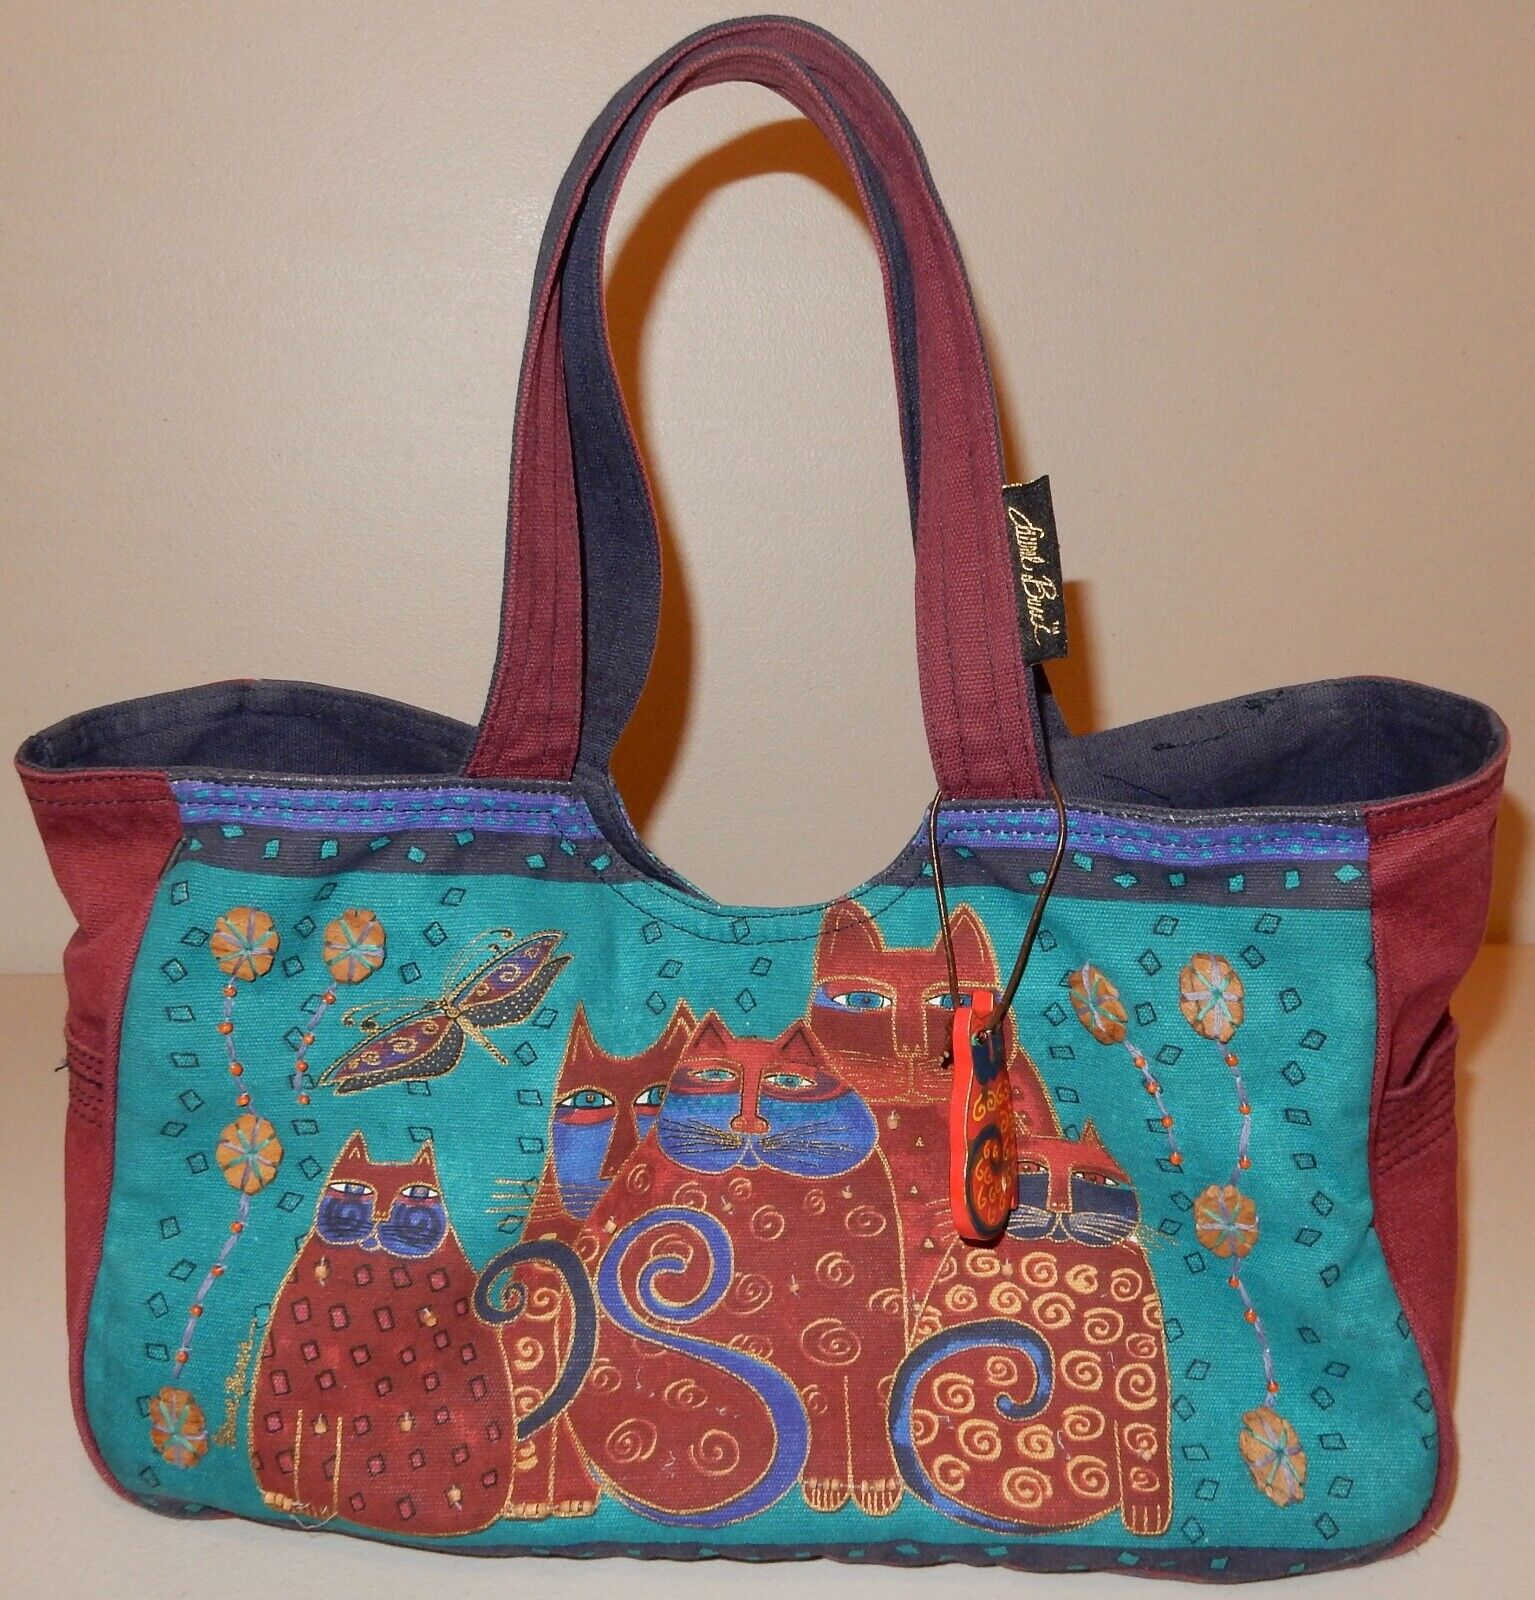 Laurel Burch Cat Tote Bag & Pouch Used - image 4